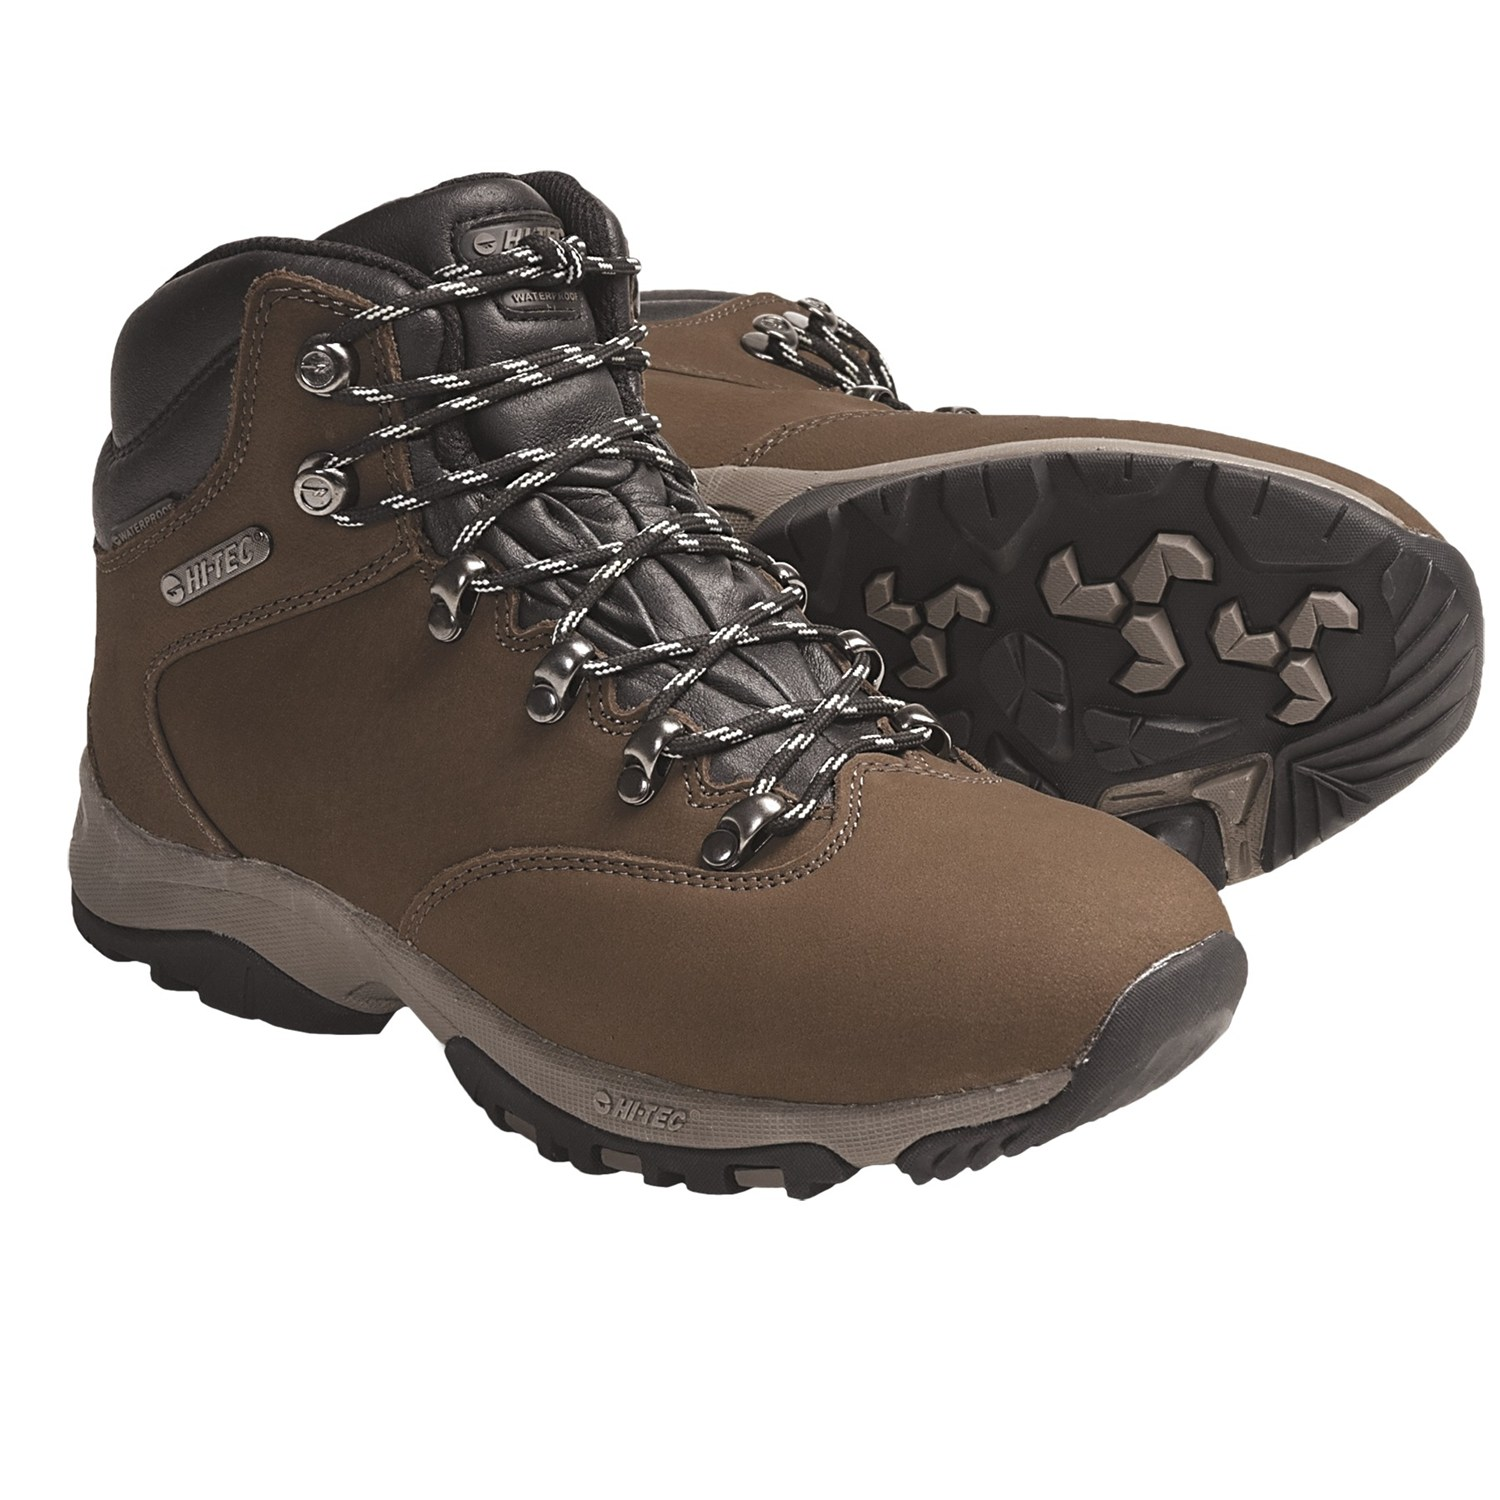 Get to Know Hi-Tec's High Quality Hiking Boots | Glacier ...